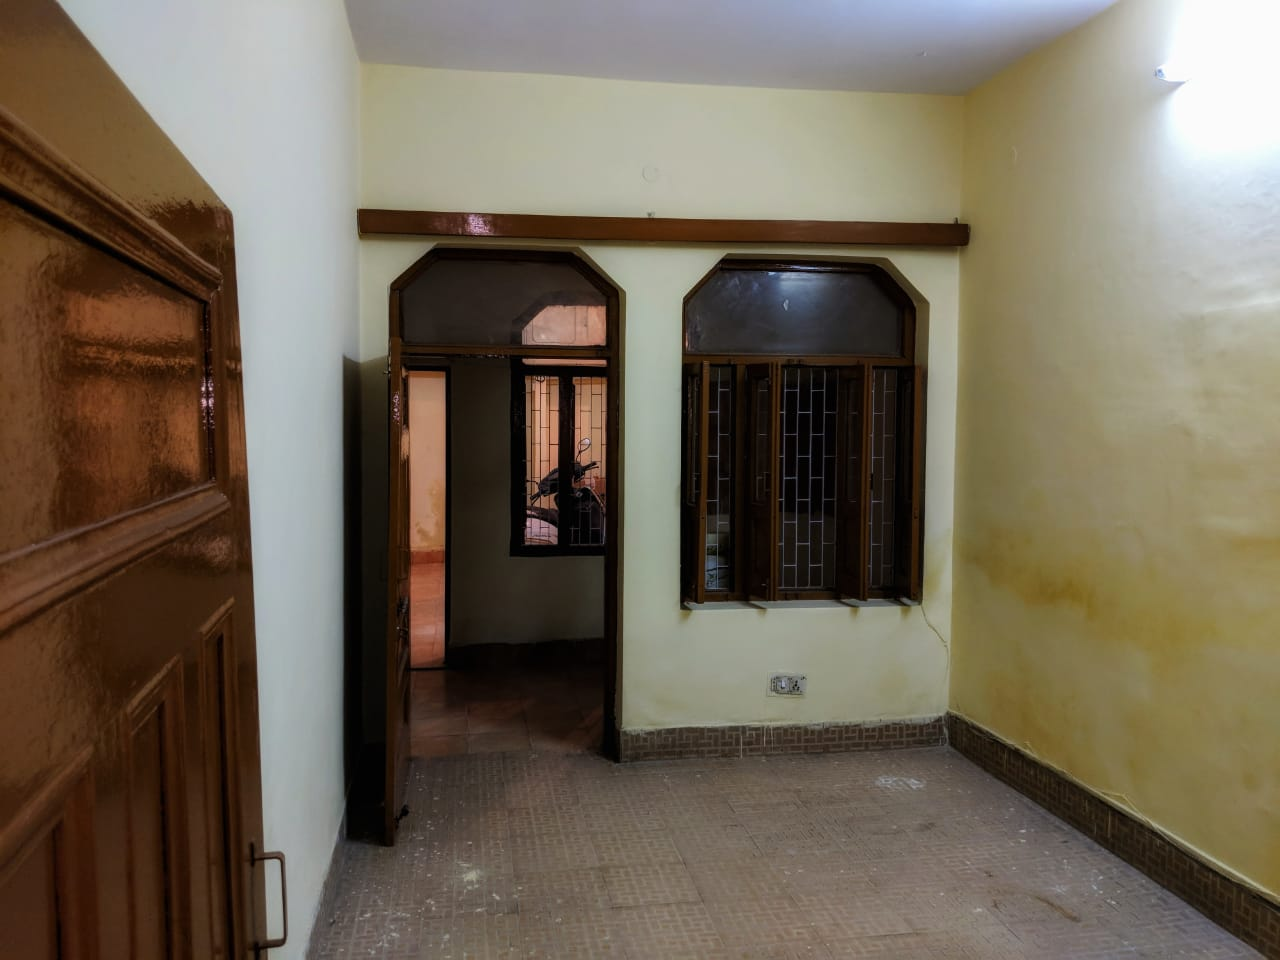 3BHK-981sqft-flat-for-rent-in--NewDelhi-TP30361